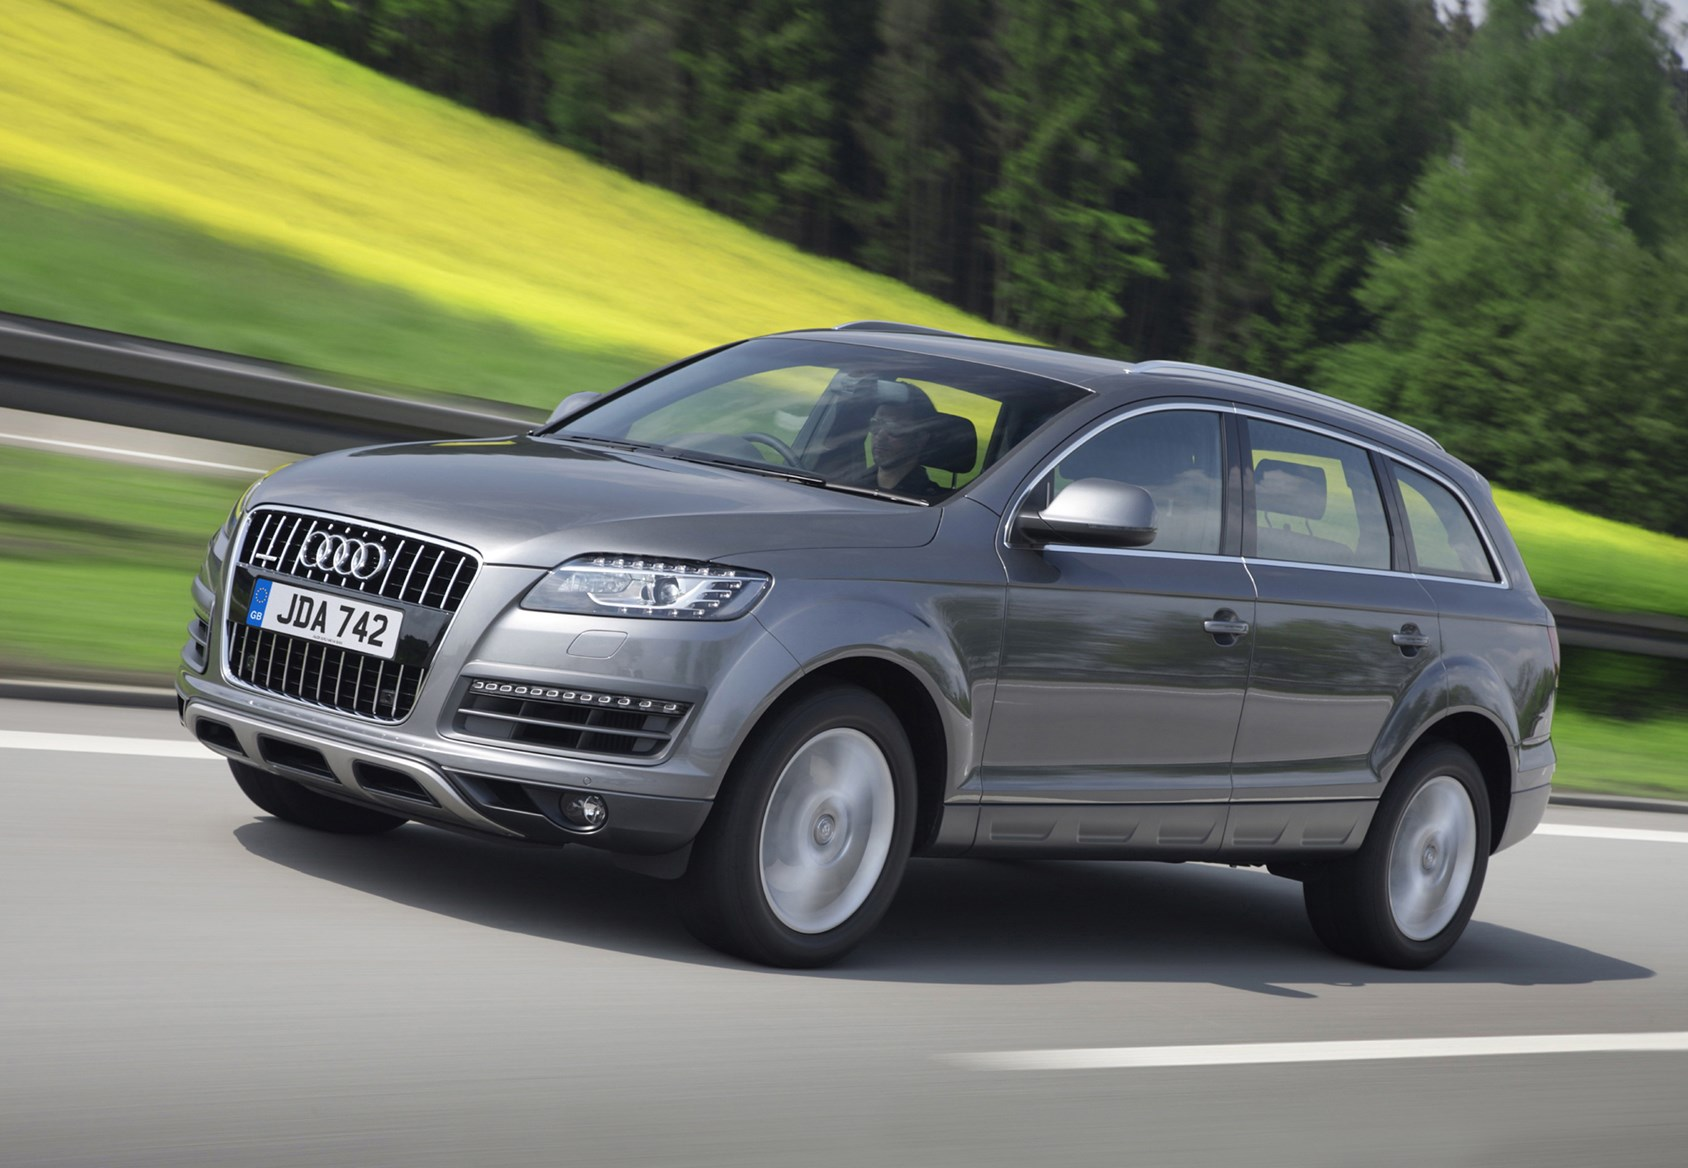 Audi Q7 SUV Review 2006 2014